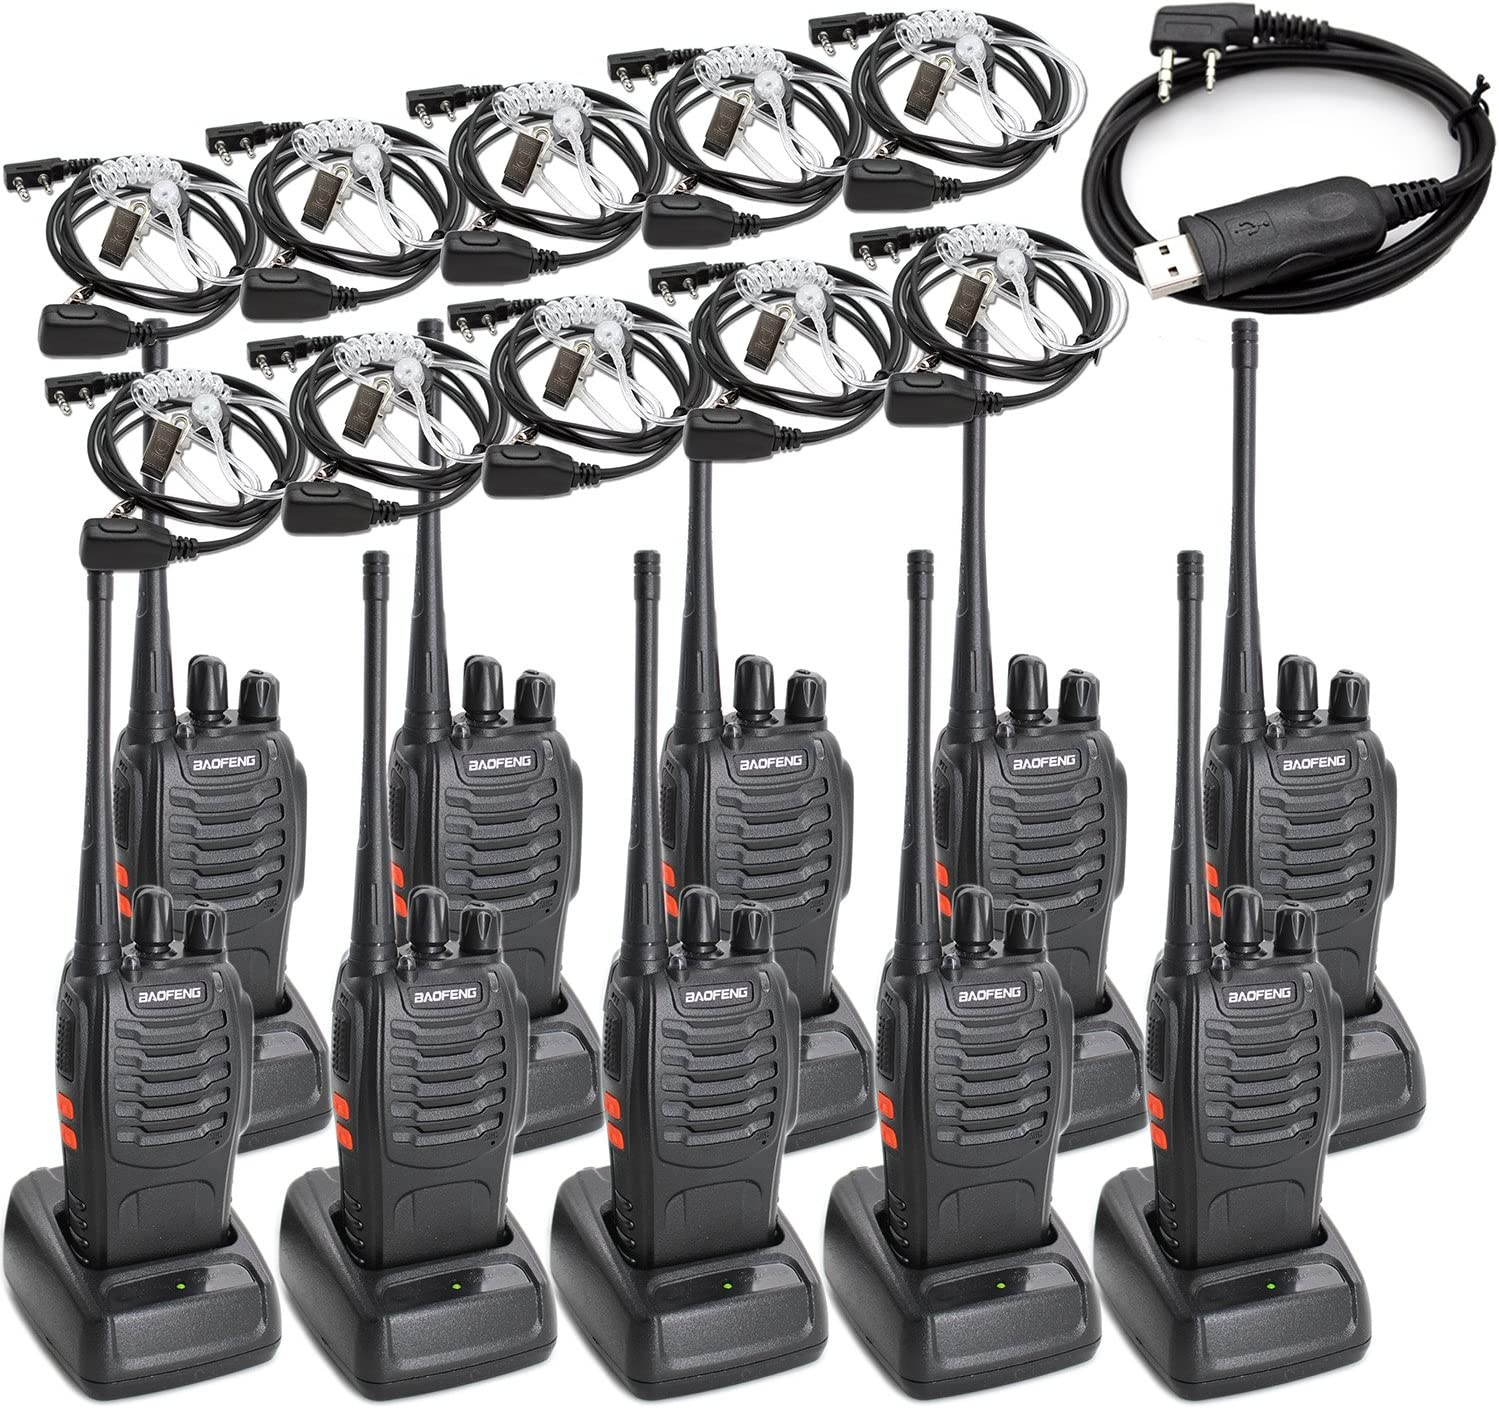 BAOFENG BF-888S Two Way Radio Long Range 16 CH Baofeng Radio and Covert Air Acoustic Tube Earpiece Pack of 10